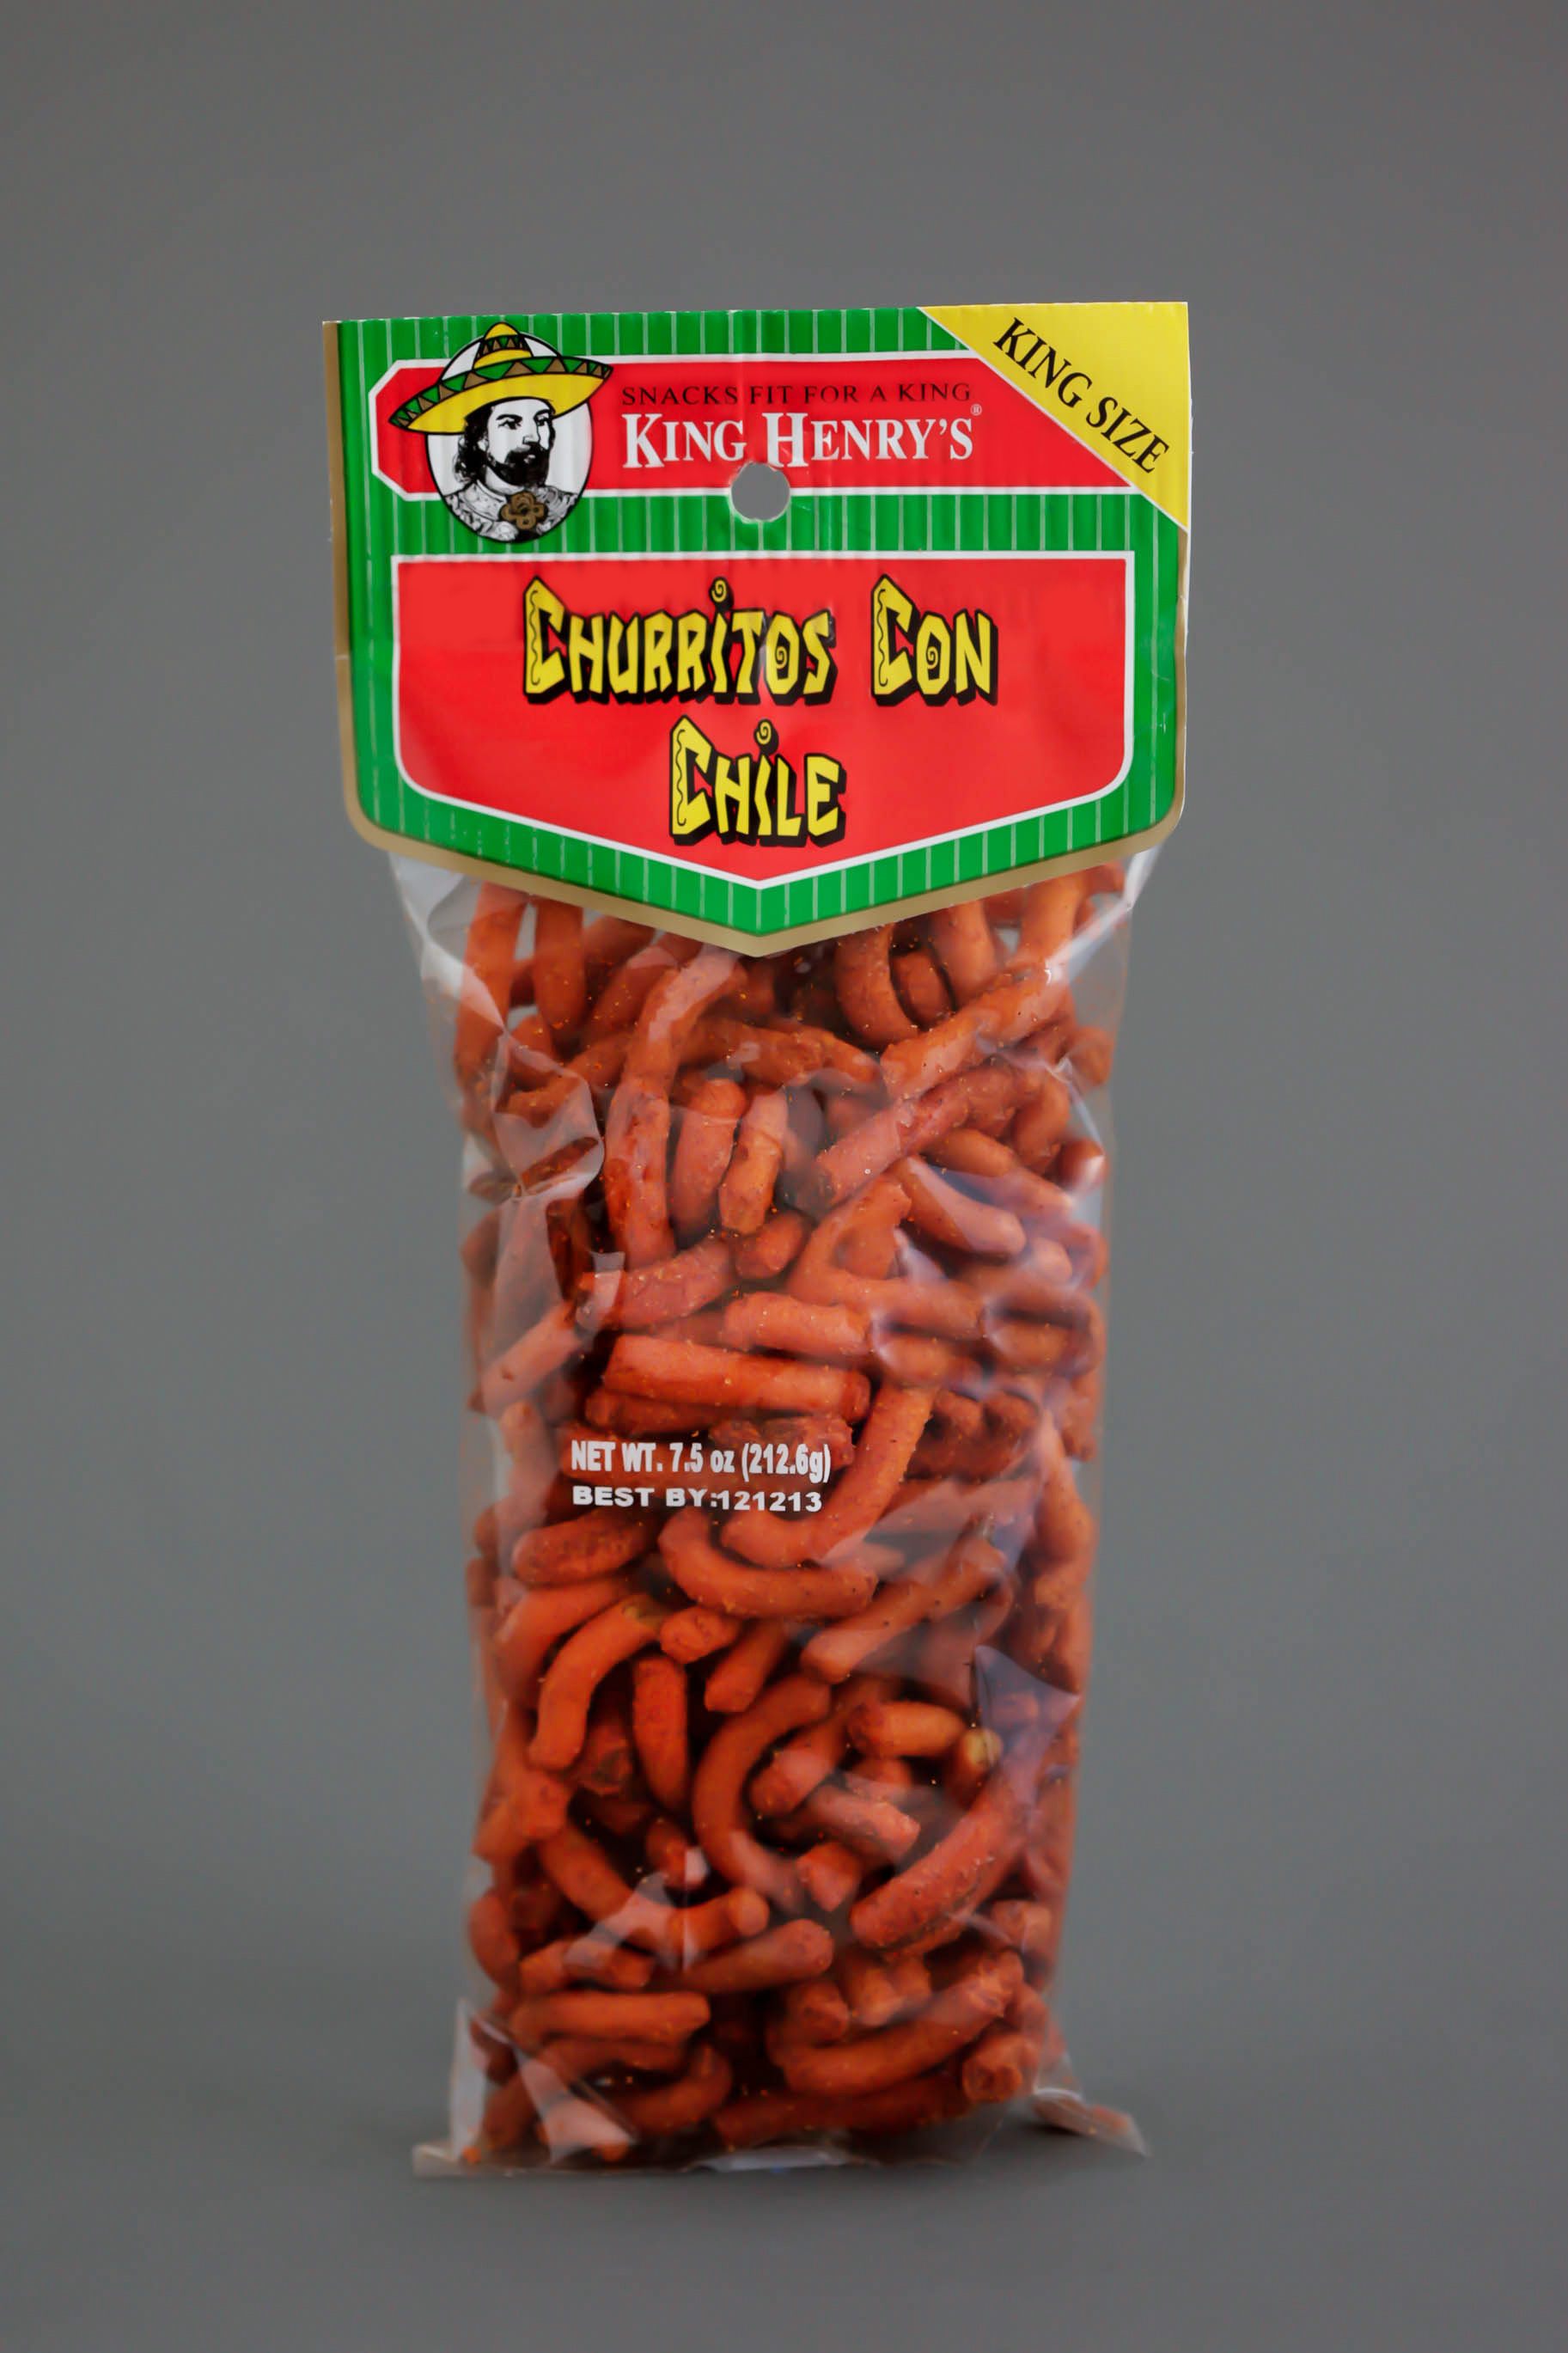 King Henry's Churritos Con Chili